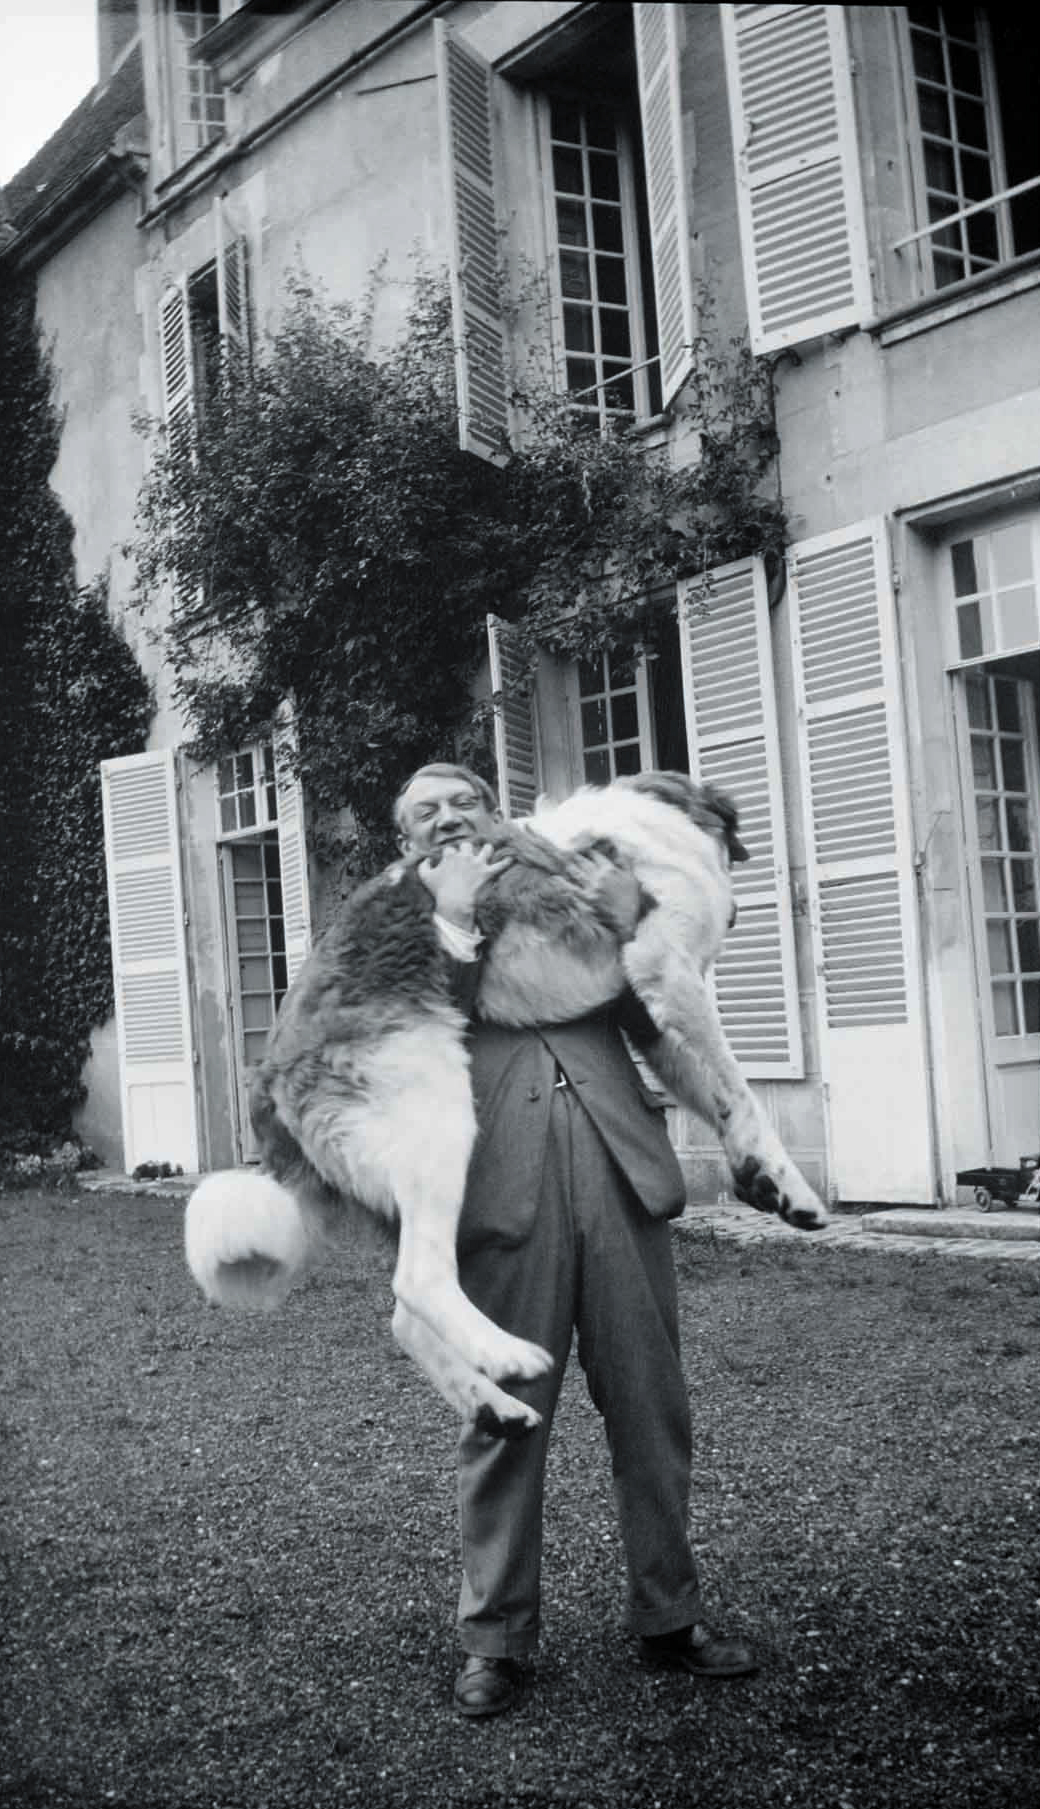 Picasso with Bob (the Great Pyrenees), shot at Château de Boisgeloup, France, 1932.